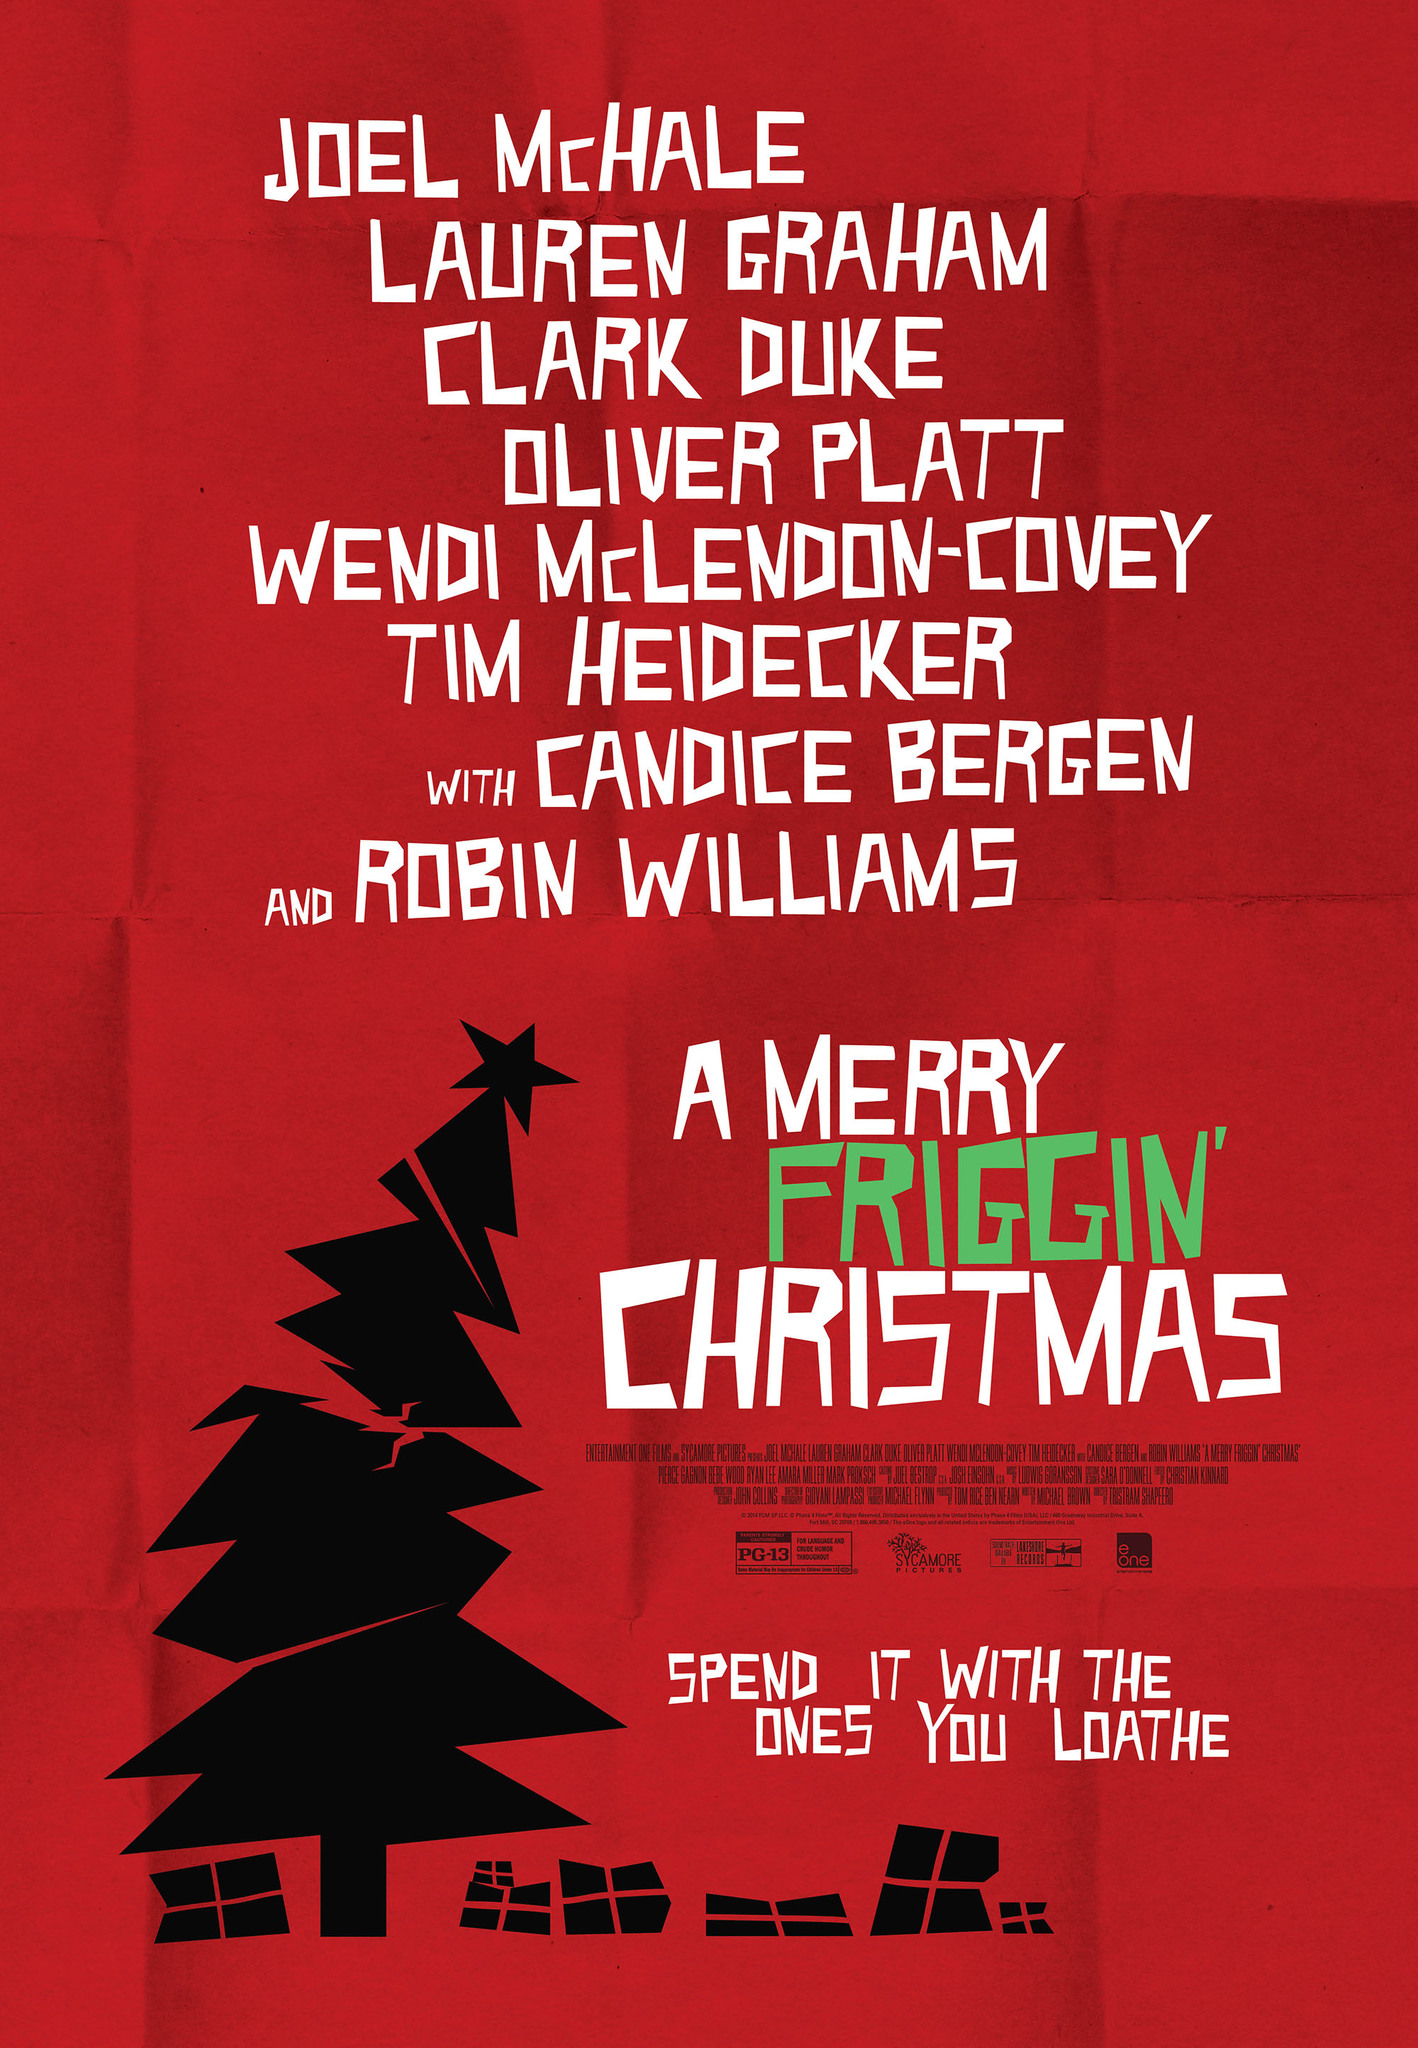 a merry friggin christmas 2014 imdb - Christmas Lists 2014